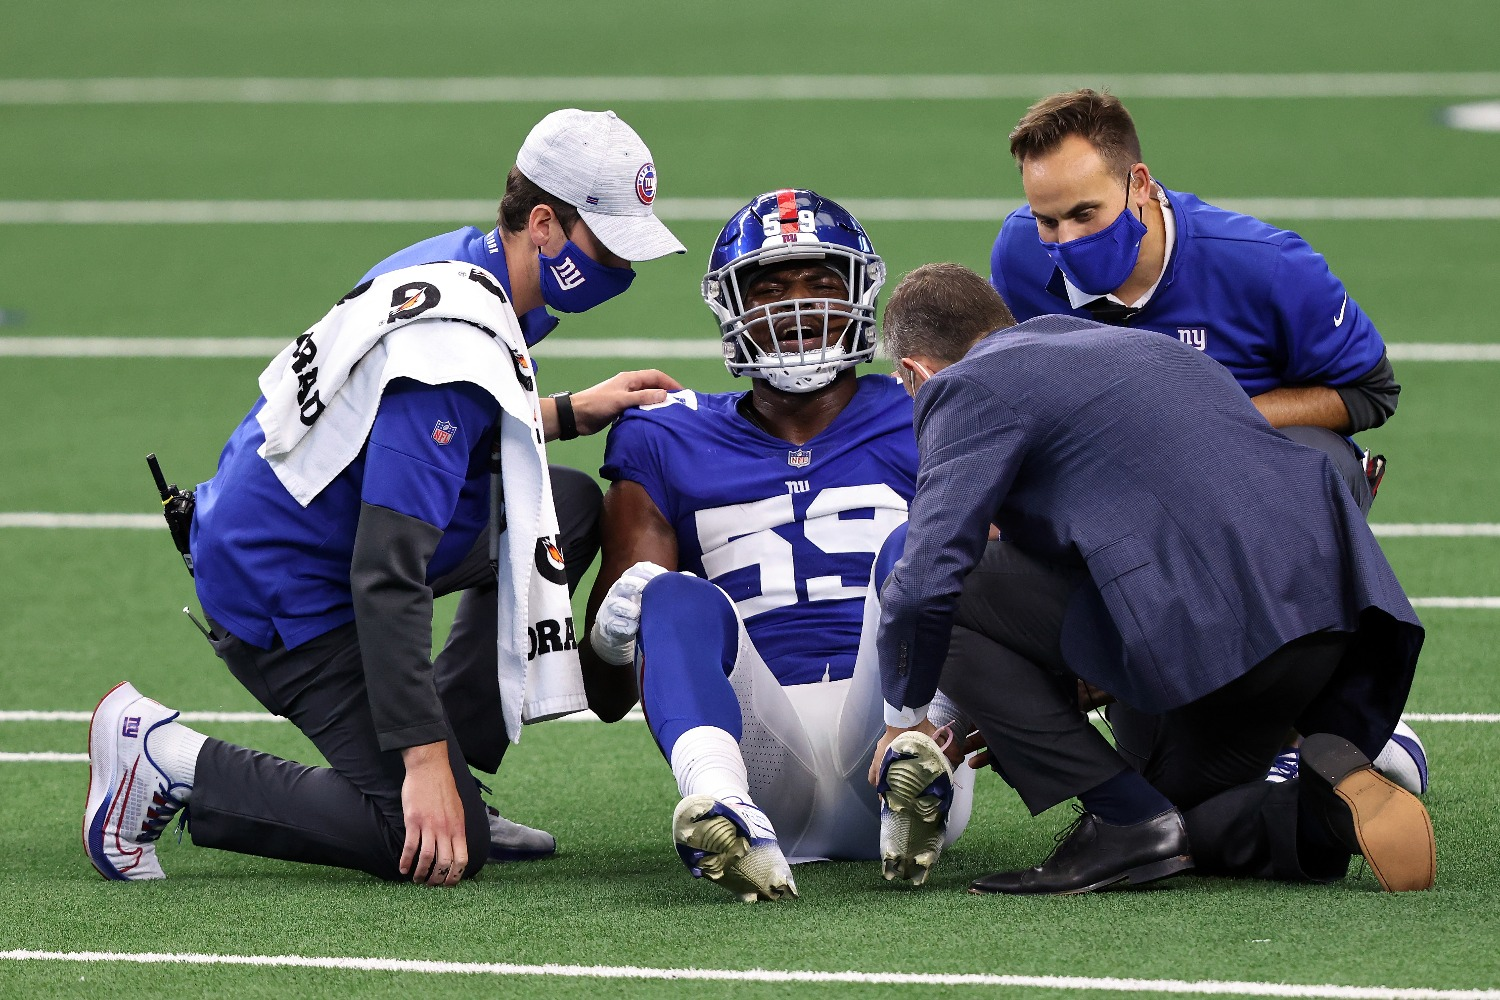 The New York Giants just rising star linebacker Lorenzo Carter to a season-ending injury in Sunday's loss to the Dallas Cowboys.